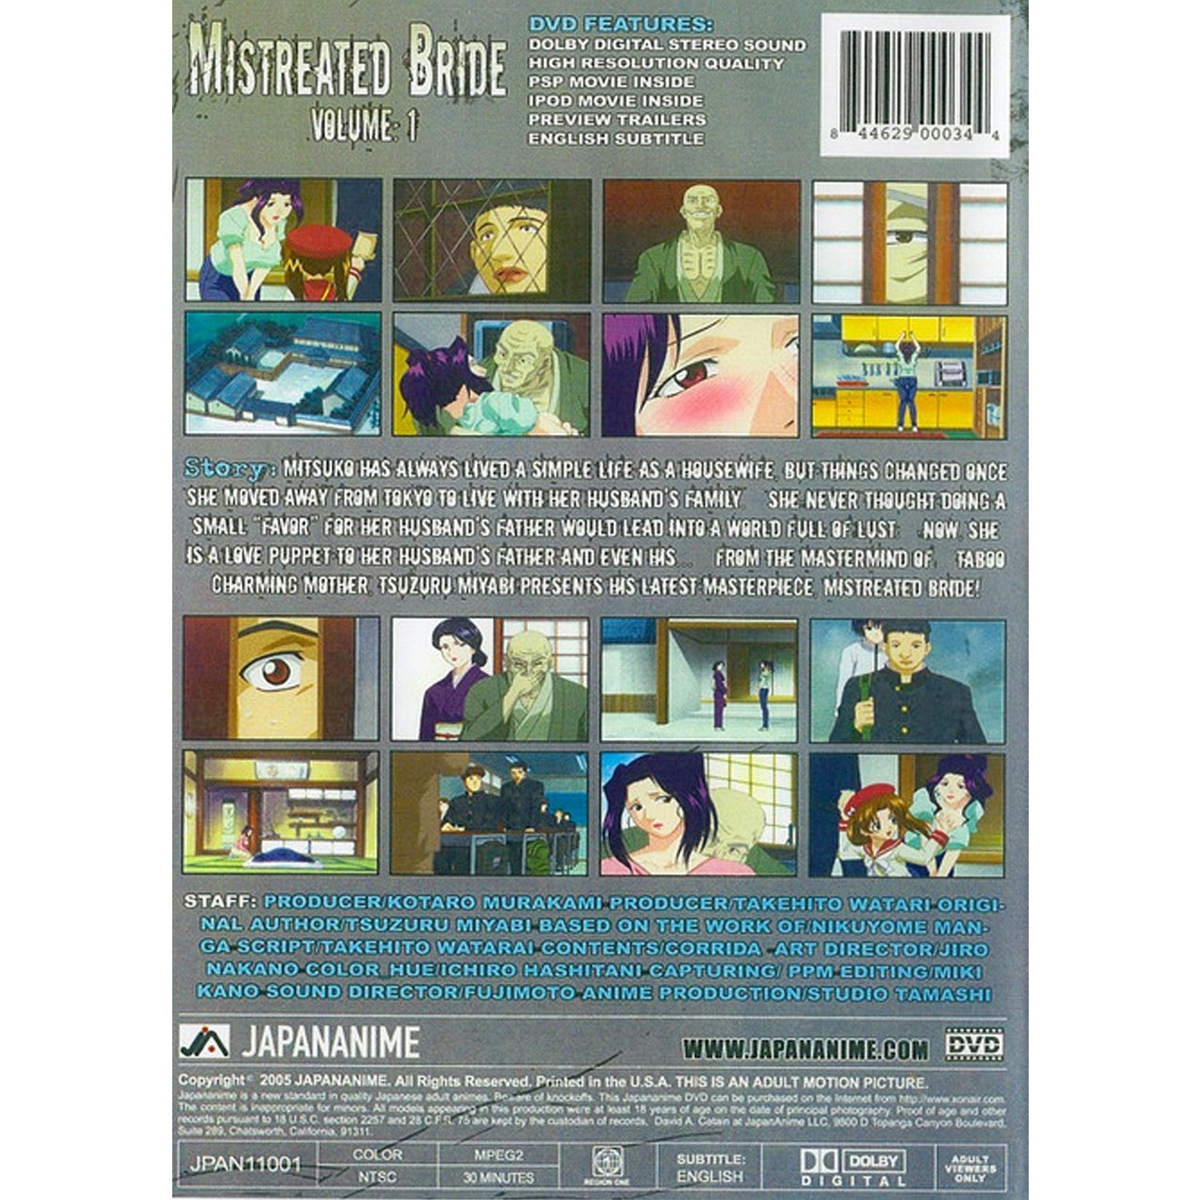 Mistreated Bride DVD 1